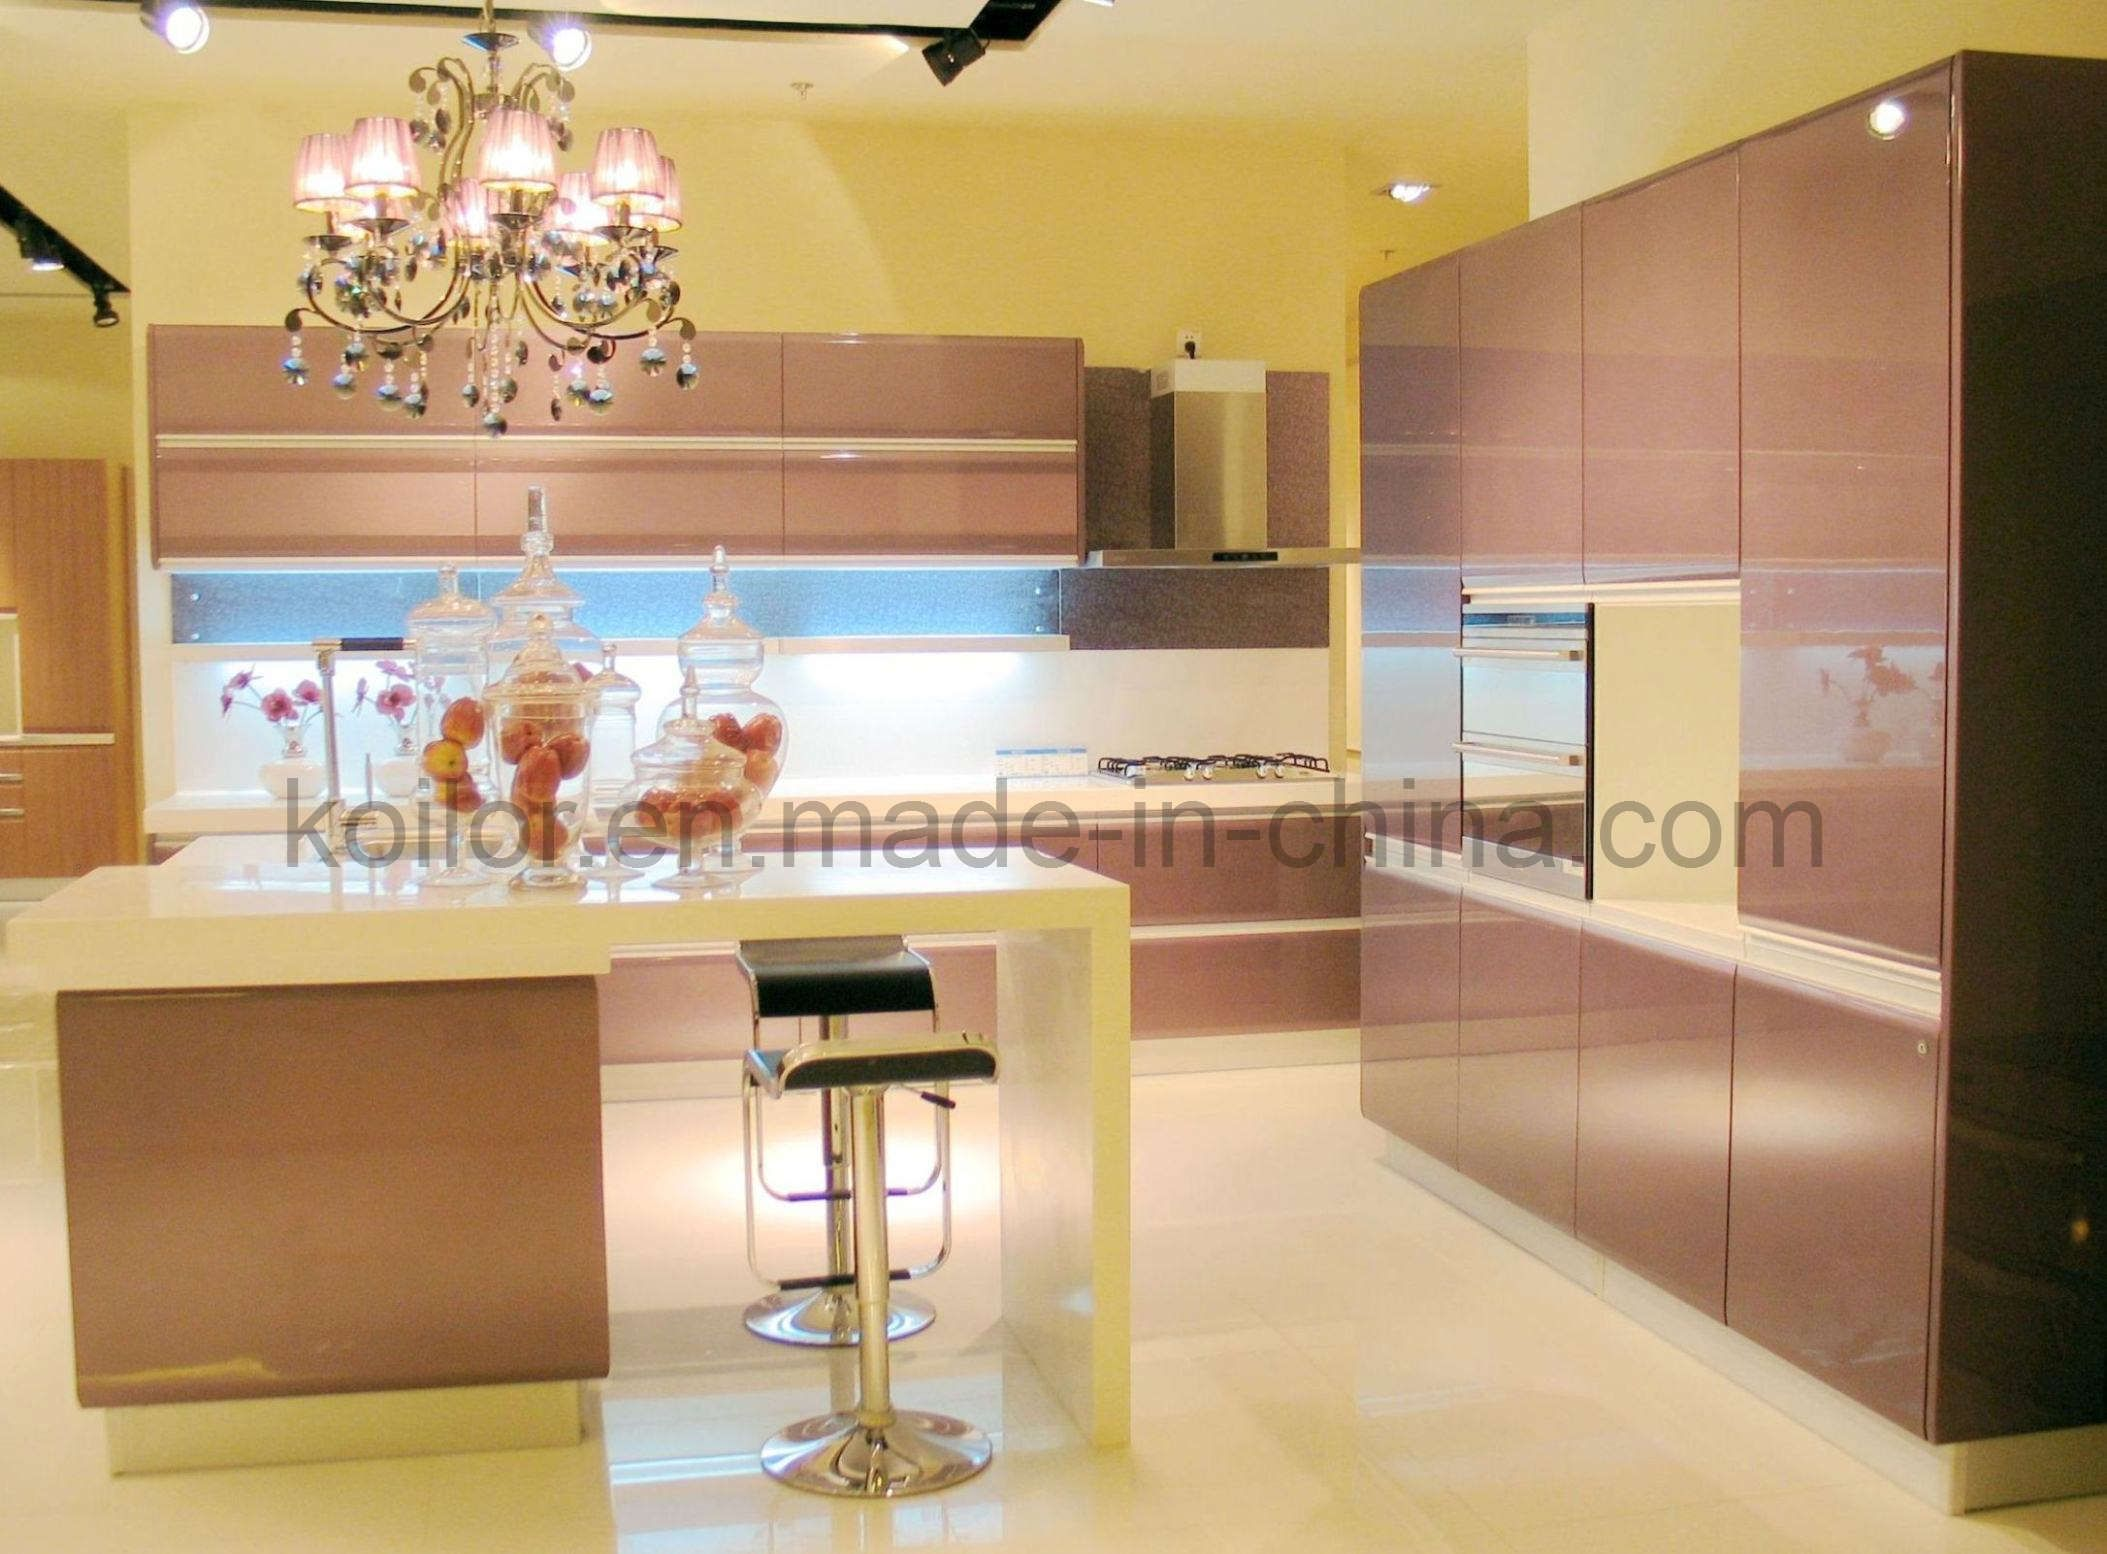 European Kitchen Cabinets And Oval Kitchen Island Design Fascinating European Kitchen Design Design Decoration